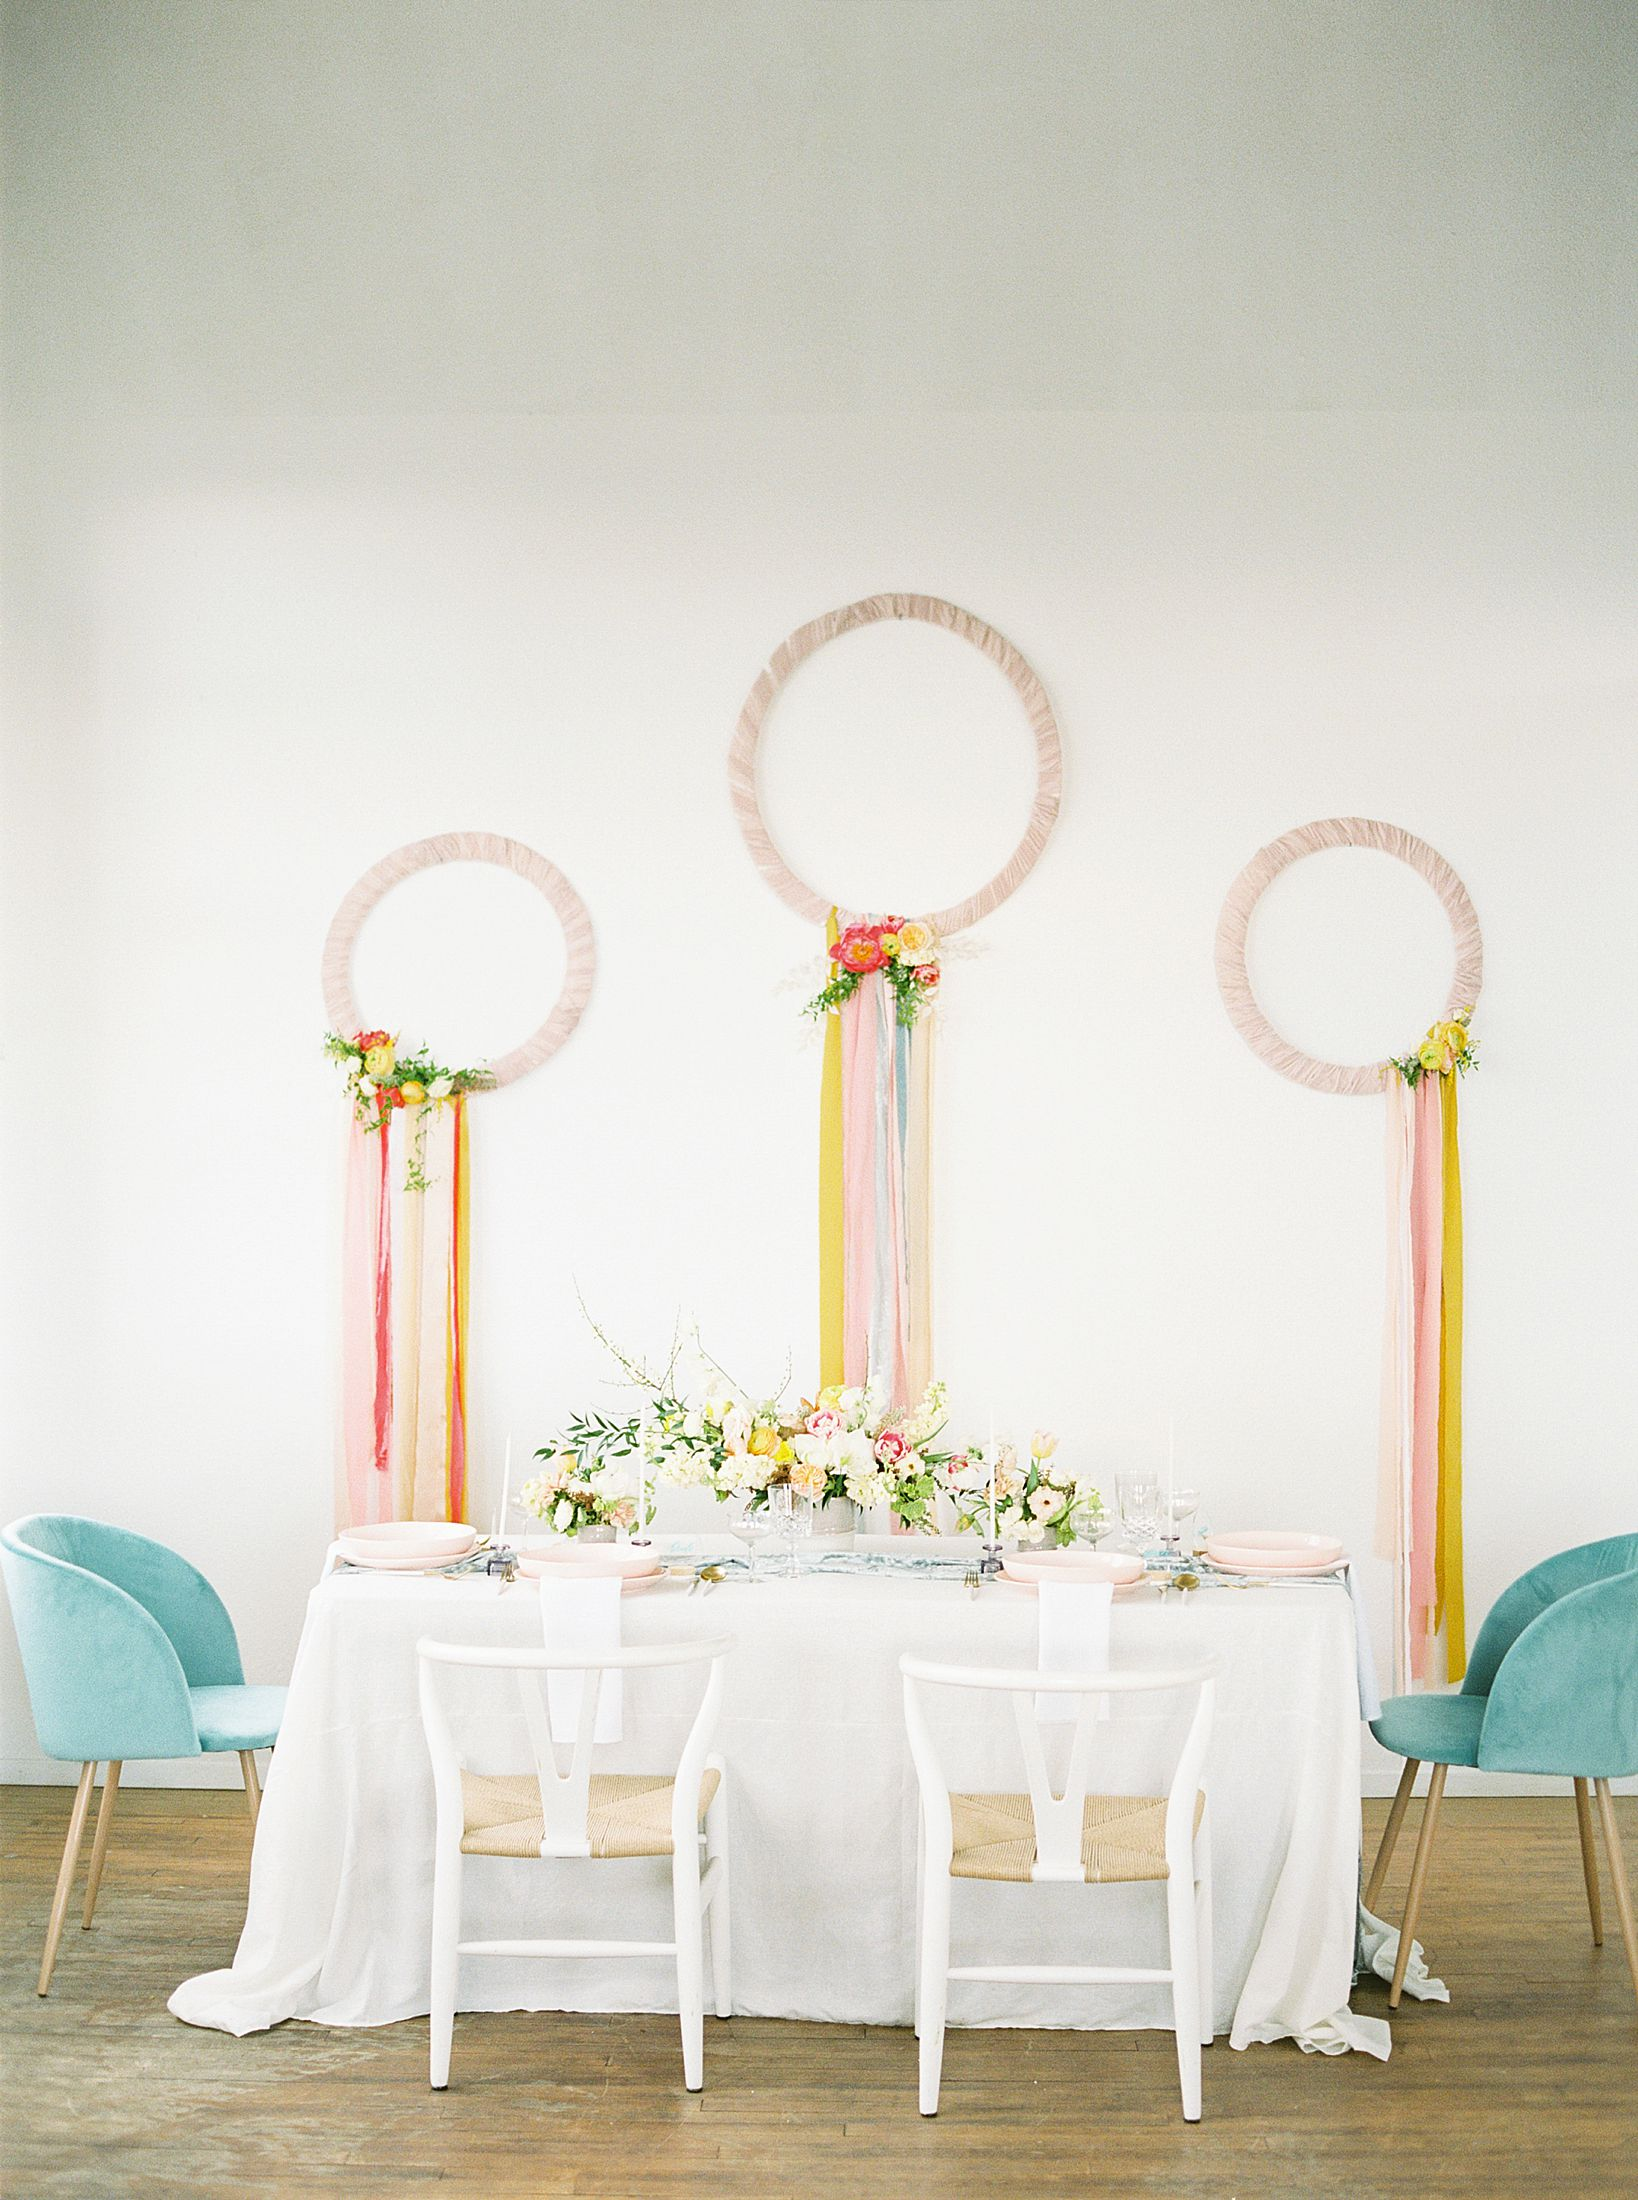 Bay Area Spring Wedding Inspiration - Ashley Baumgartner - Inspired By This - Party Crush Studio and Lens of Lenox Videography - Bay Area Wedding Photography_0003.jpg